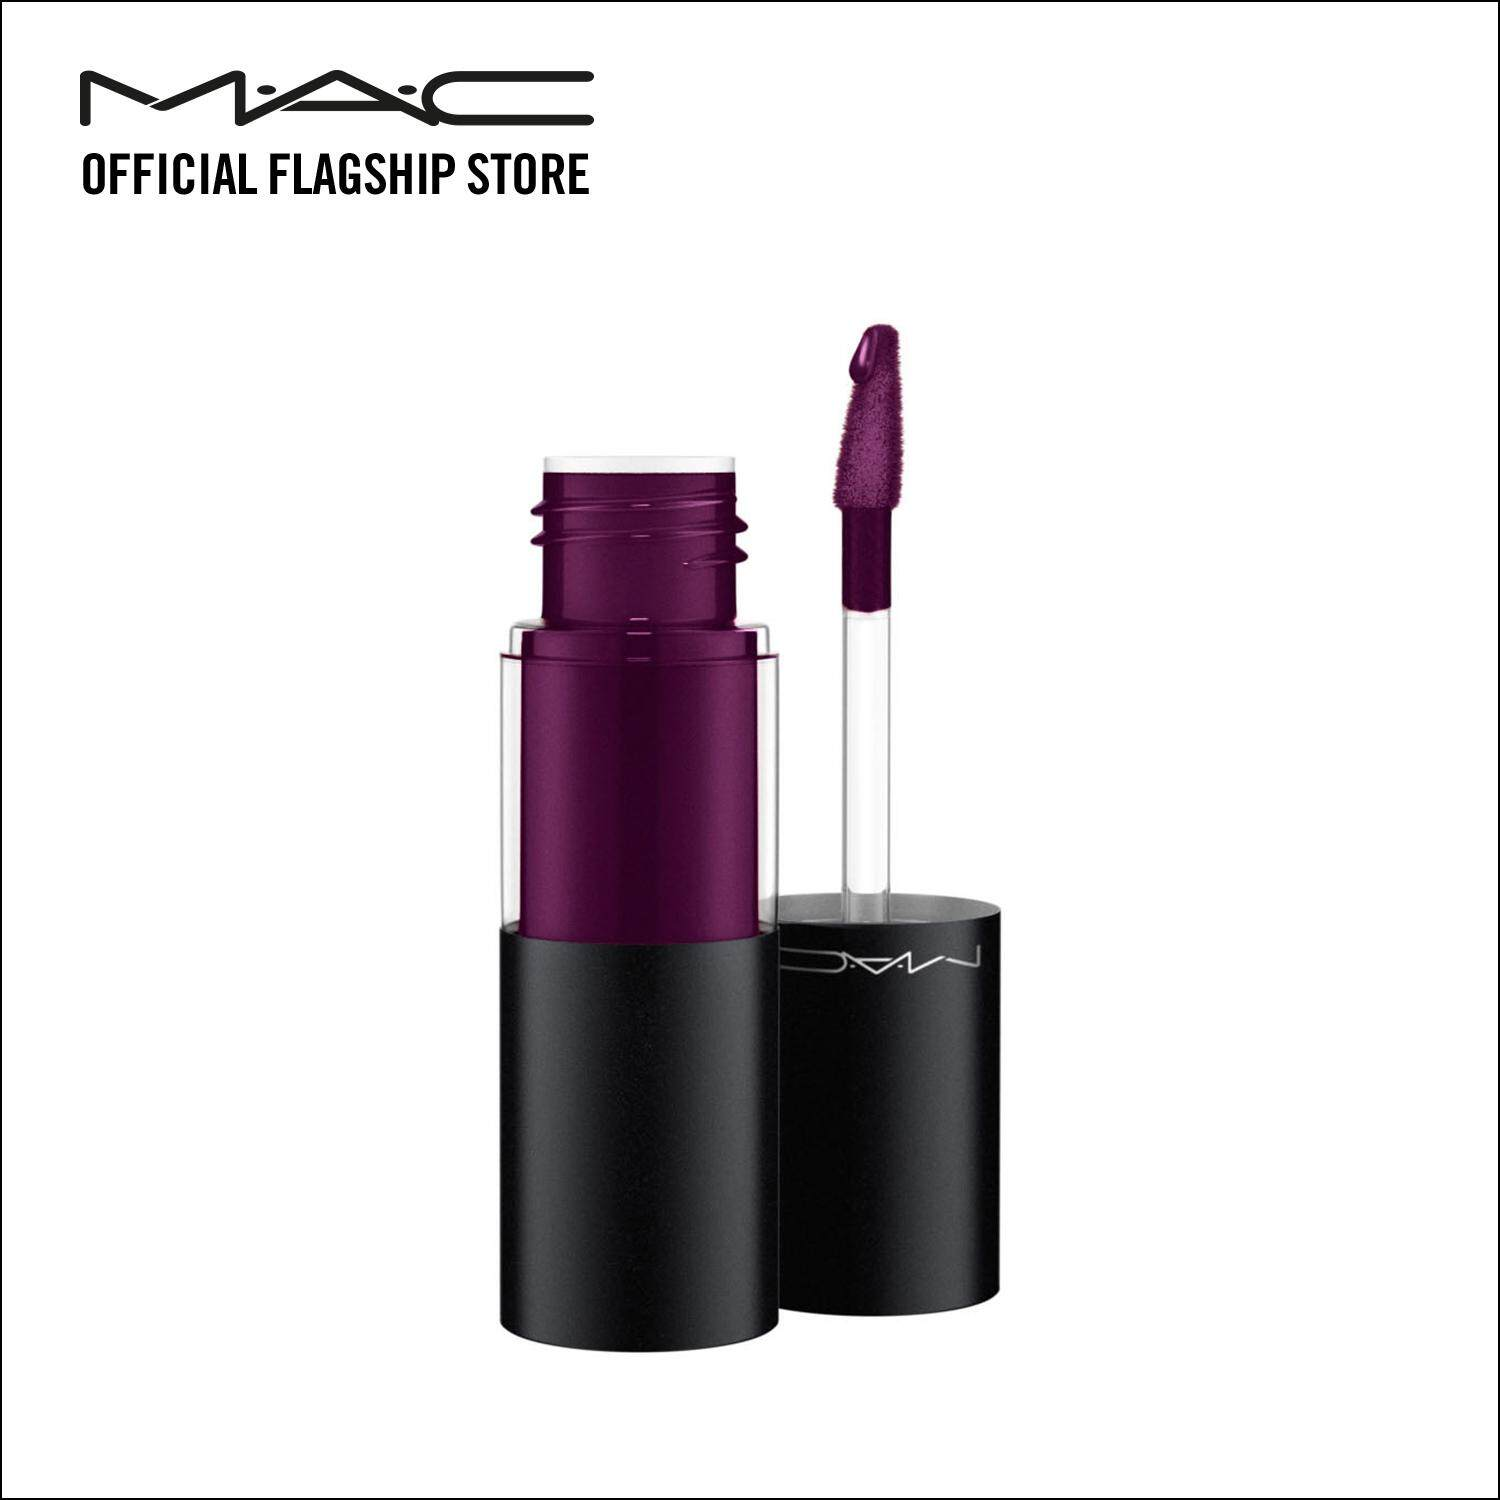 MAC PRO LONGWEAR GLOSSY STAIN - PERPETUAL HOLIDAY Philippines